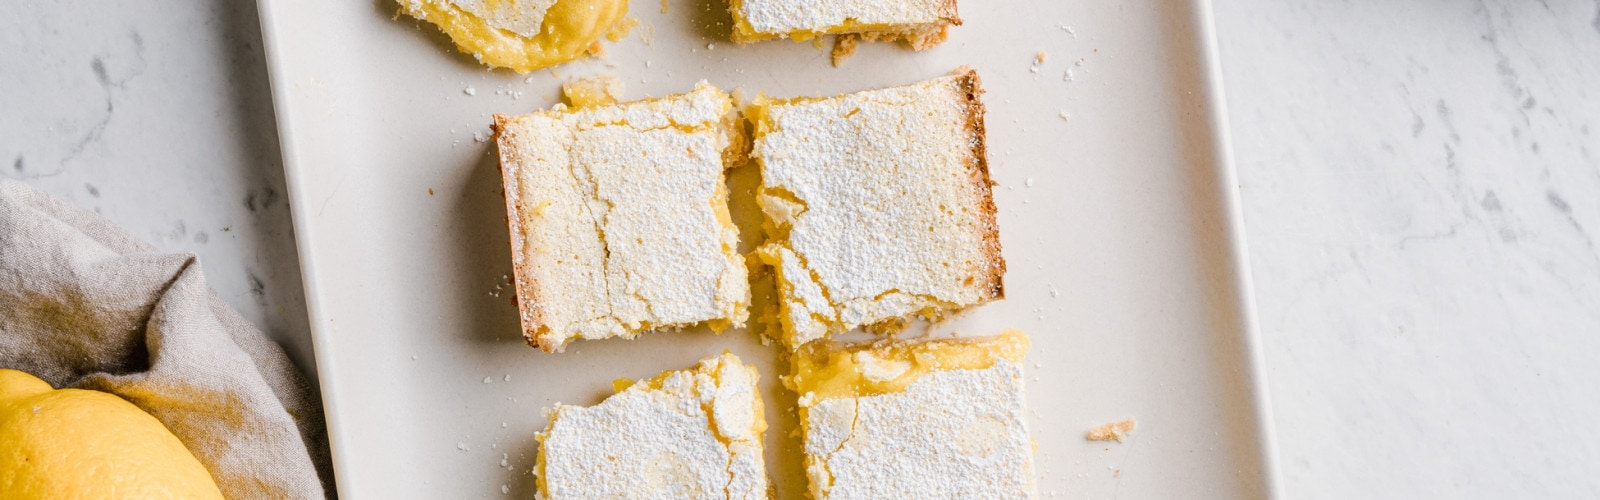 Organic and gluten free lemon bars ready-to-serve and one already nibbled on, placed on a marble counter top